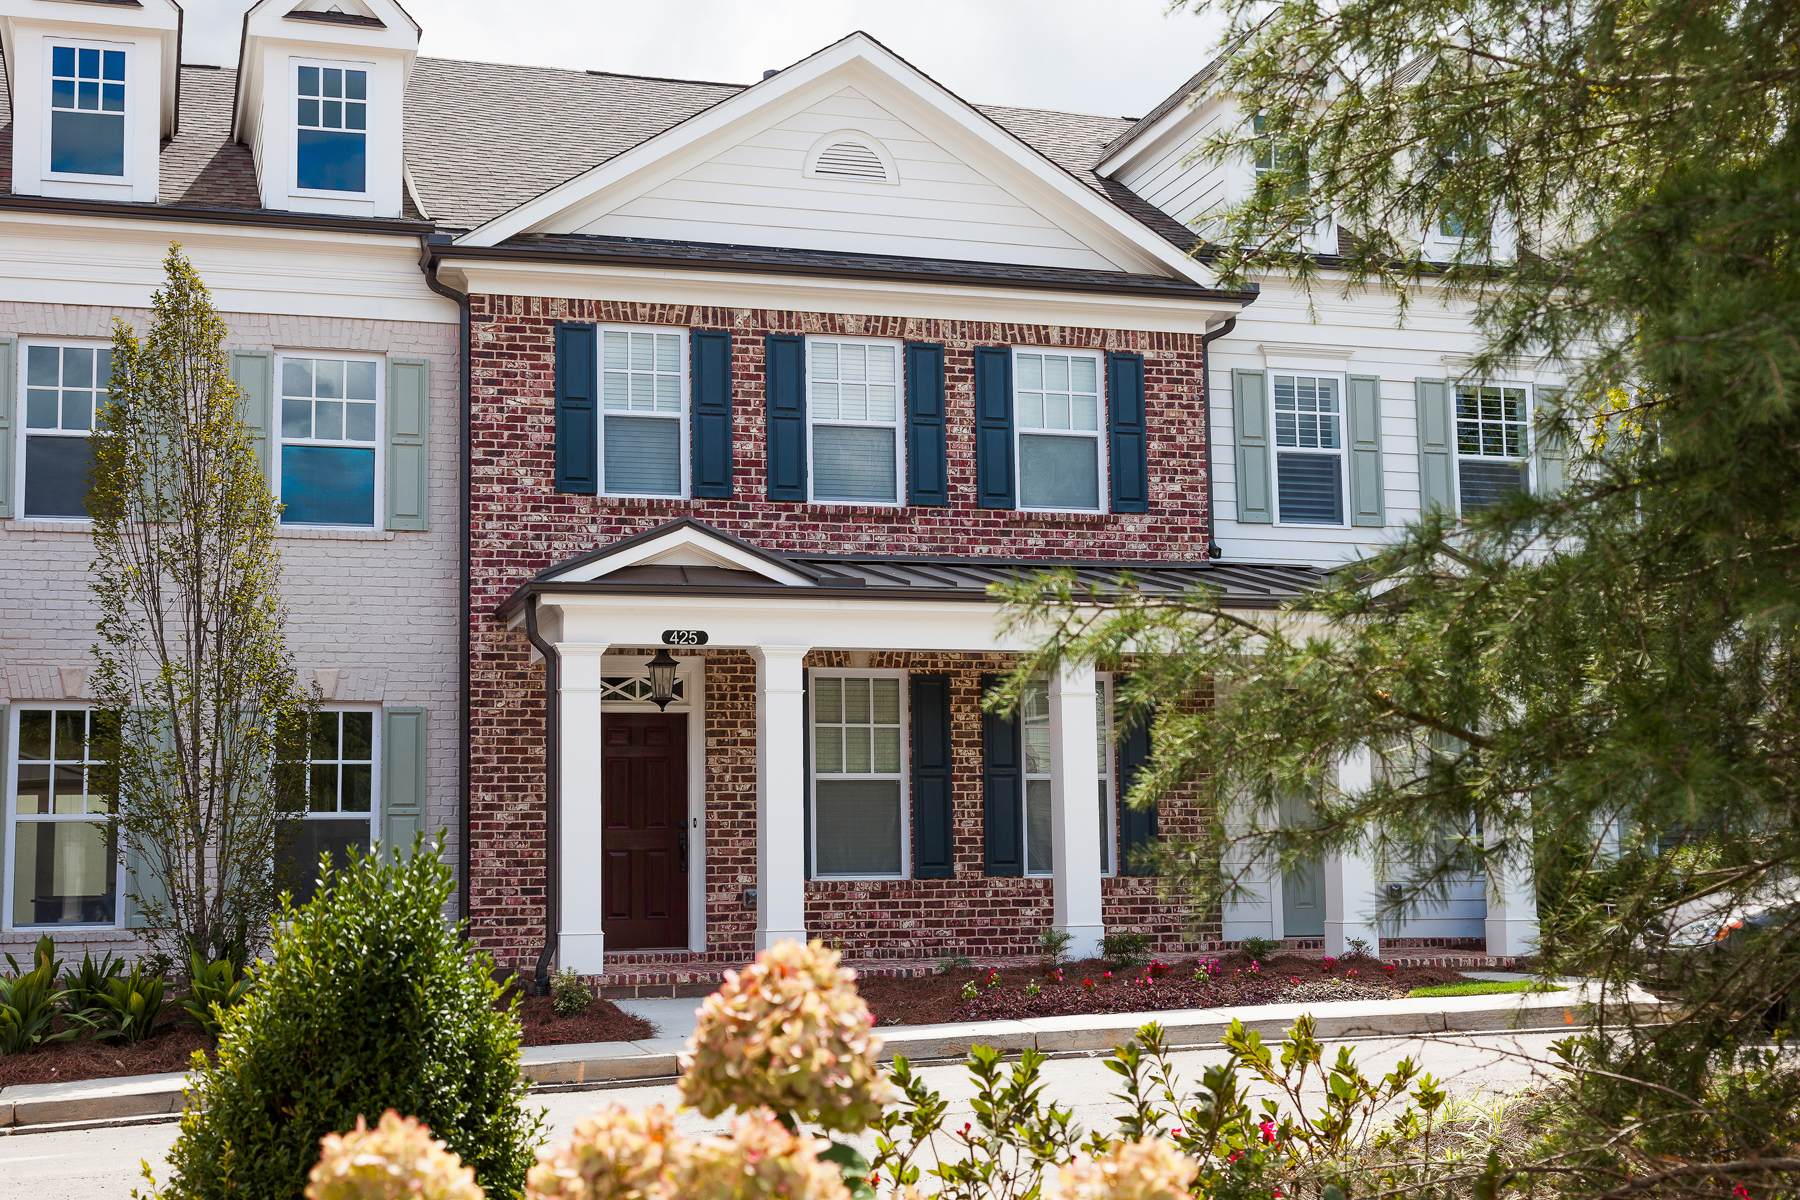 Townhouse for Rent at Brand New In The Heart Of Alpharetta 425 Letchas Lane Alpharetta, Georgia 30009 United States